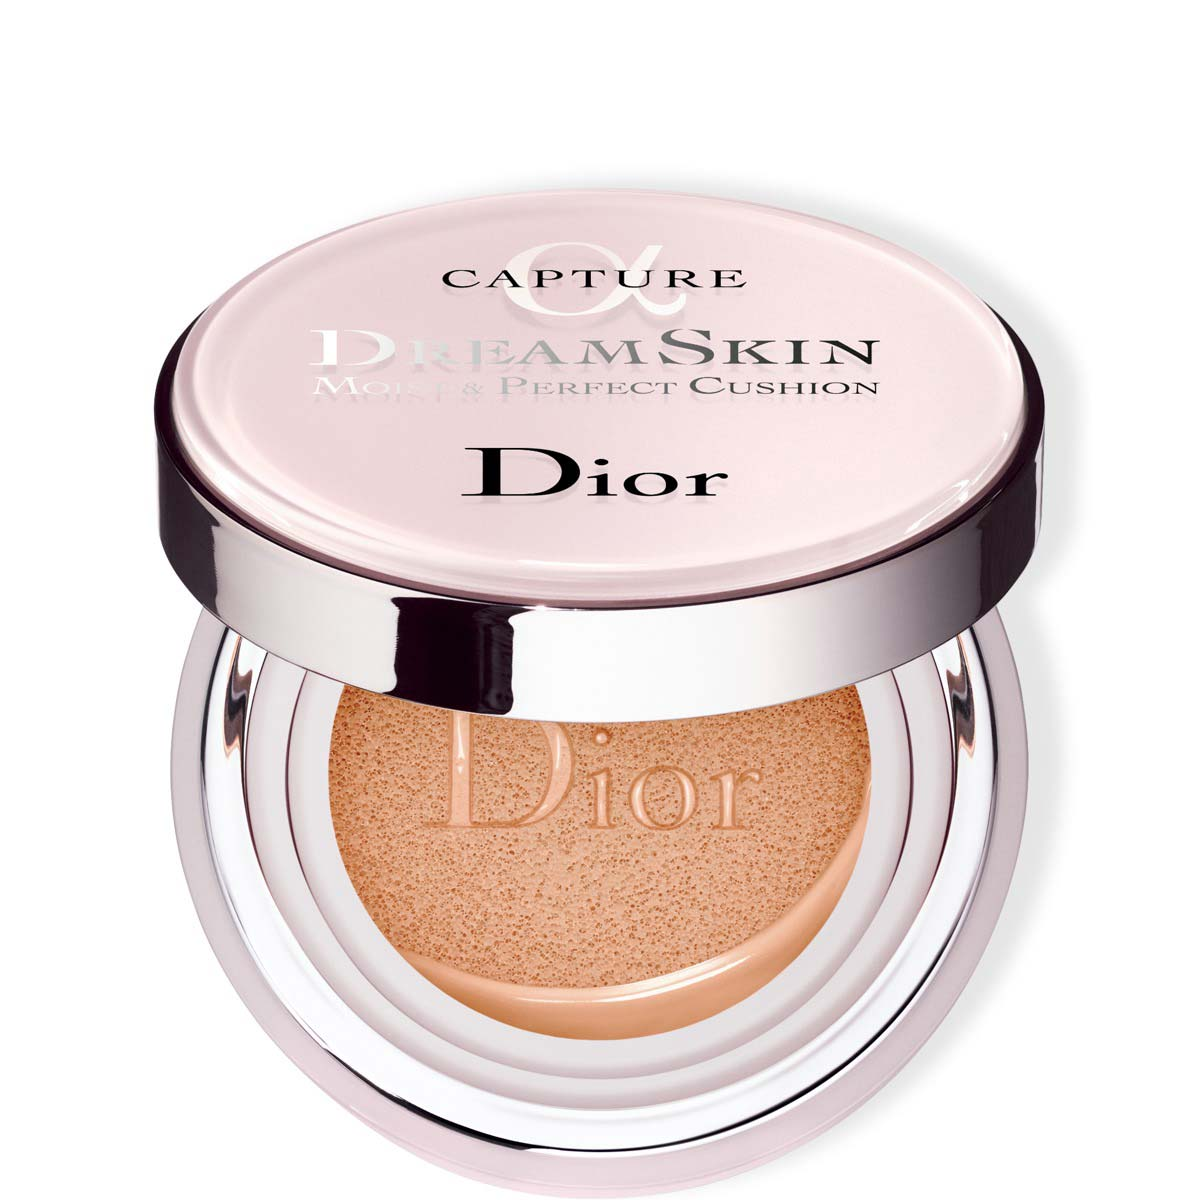 Capture Dreamskin Moist & Perfect Cushion - DIOR